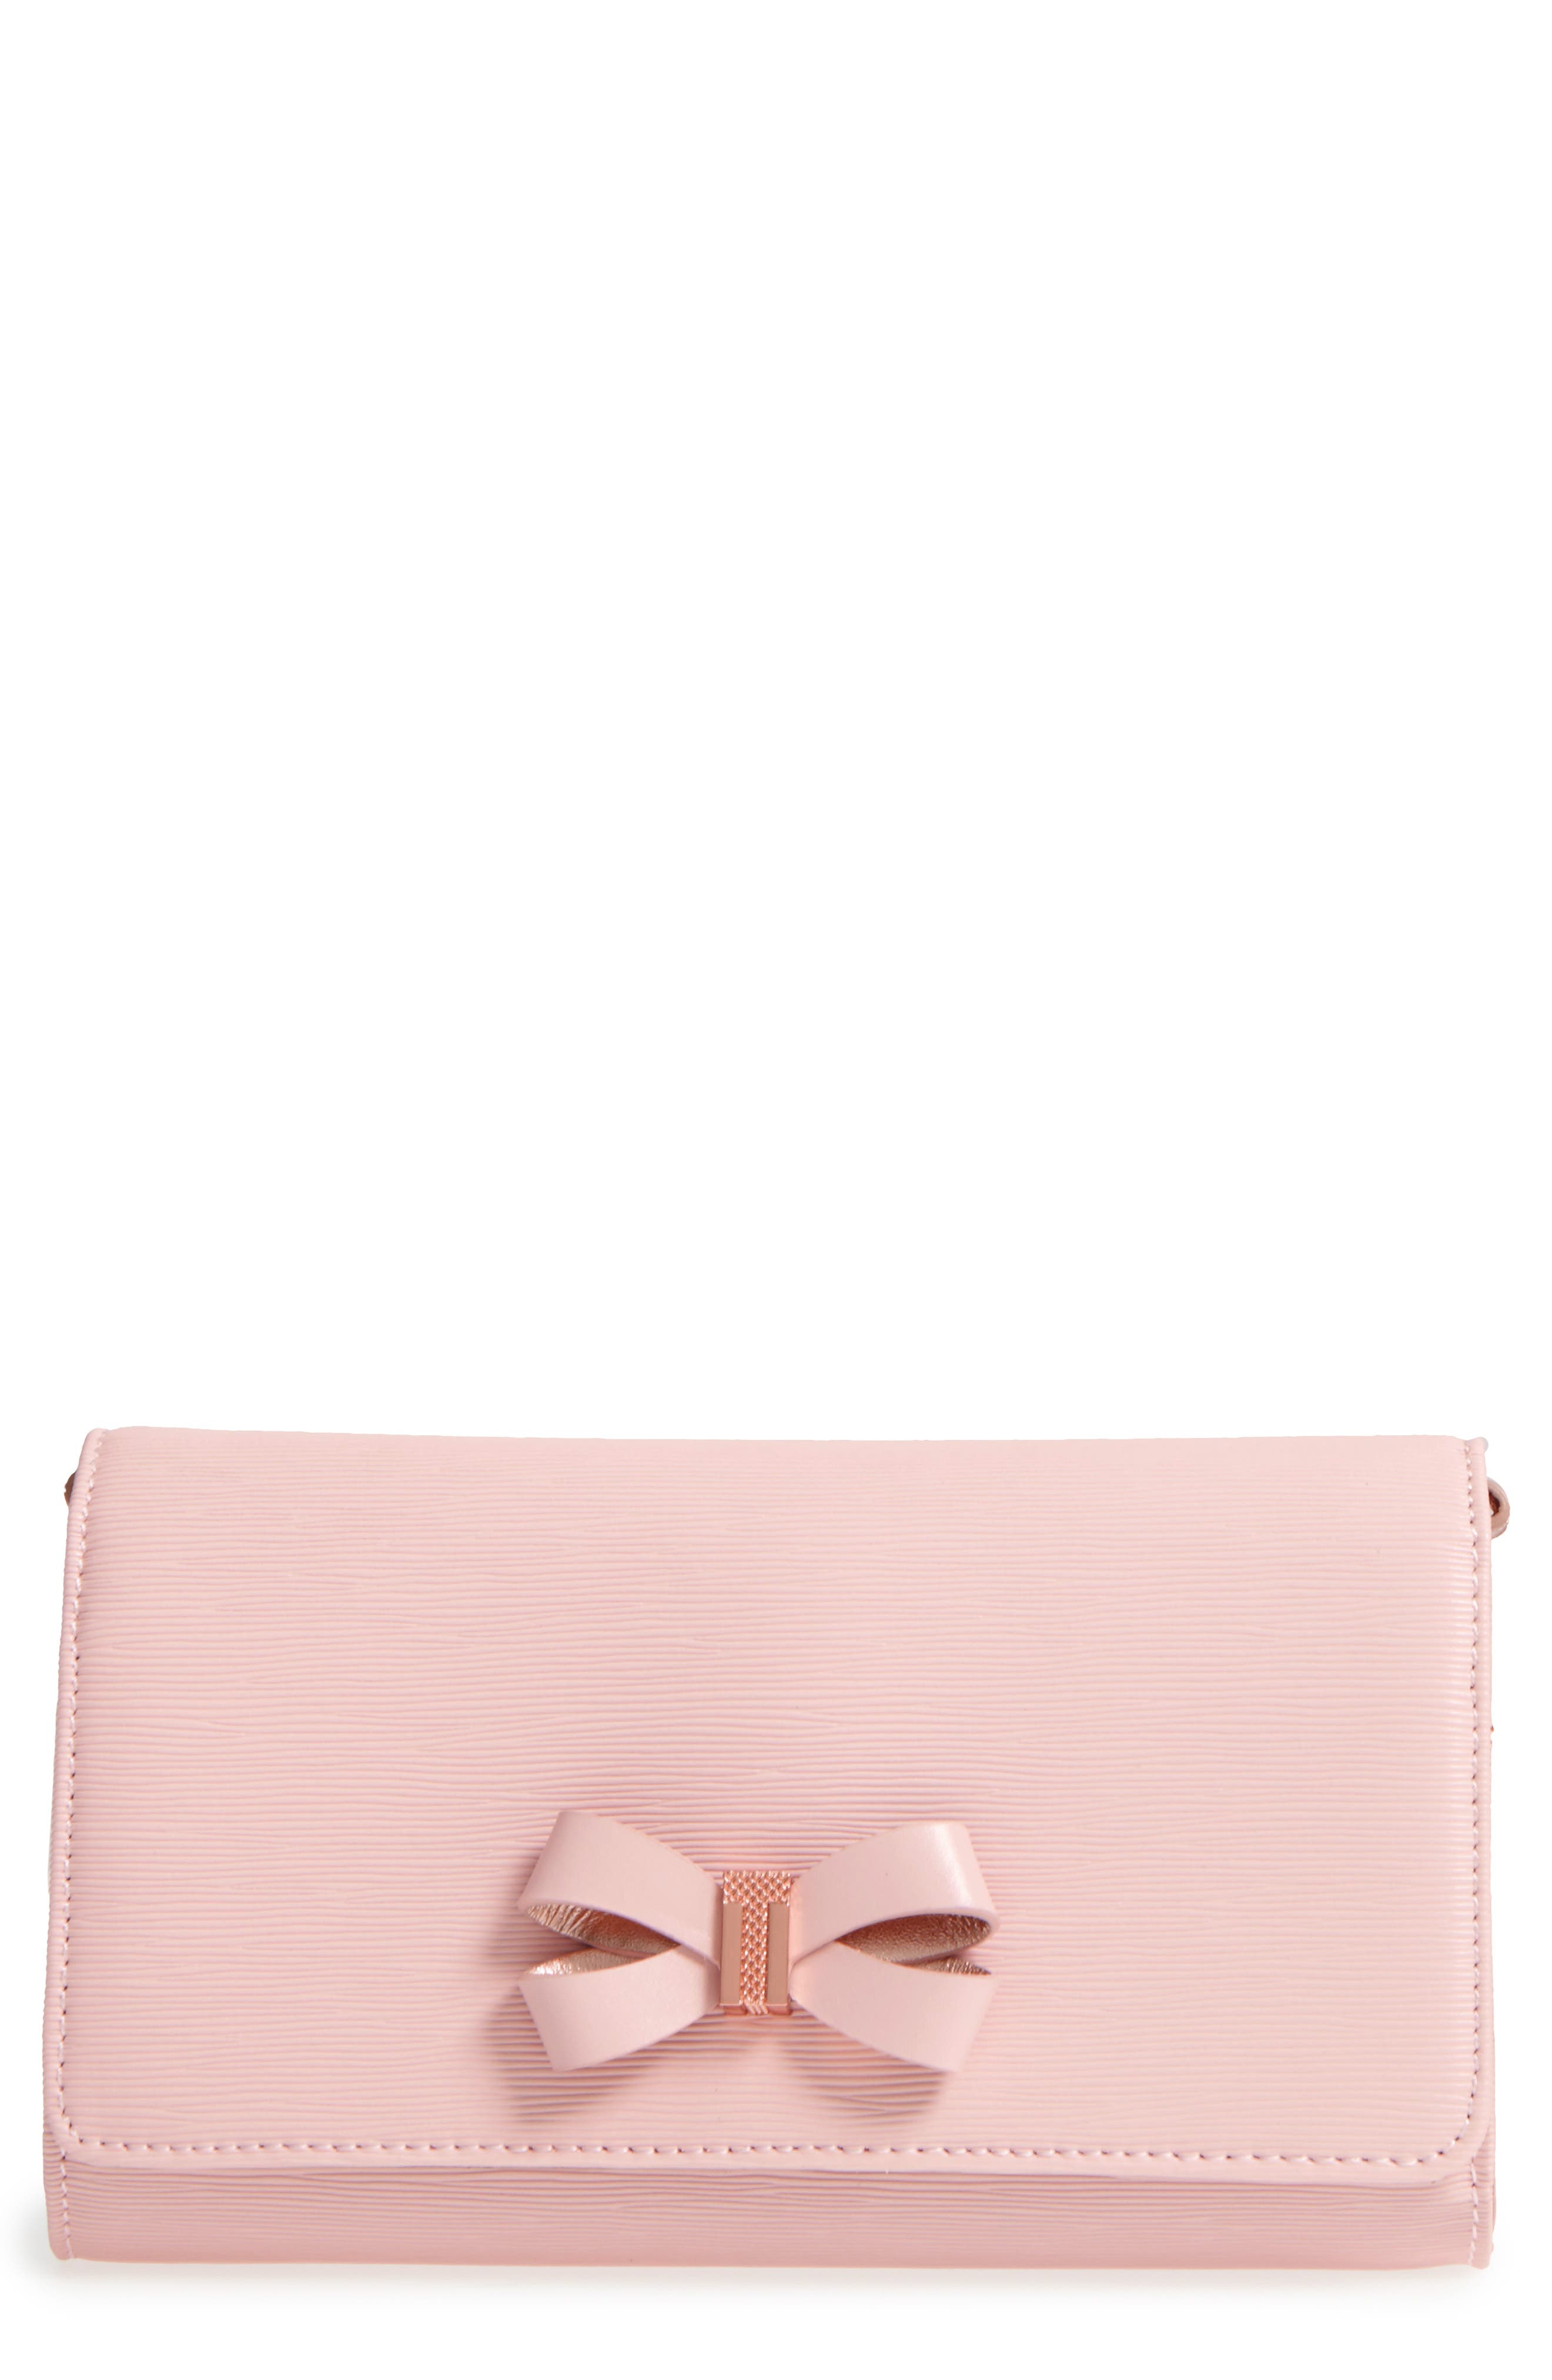 Ted Baker London Melisia Bow Leather Mantinee Wallet on a Chain